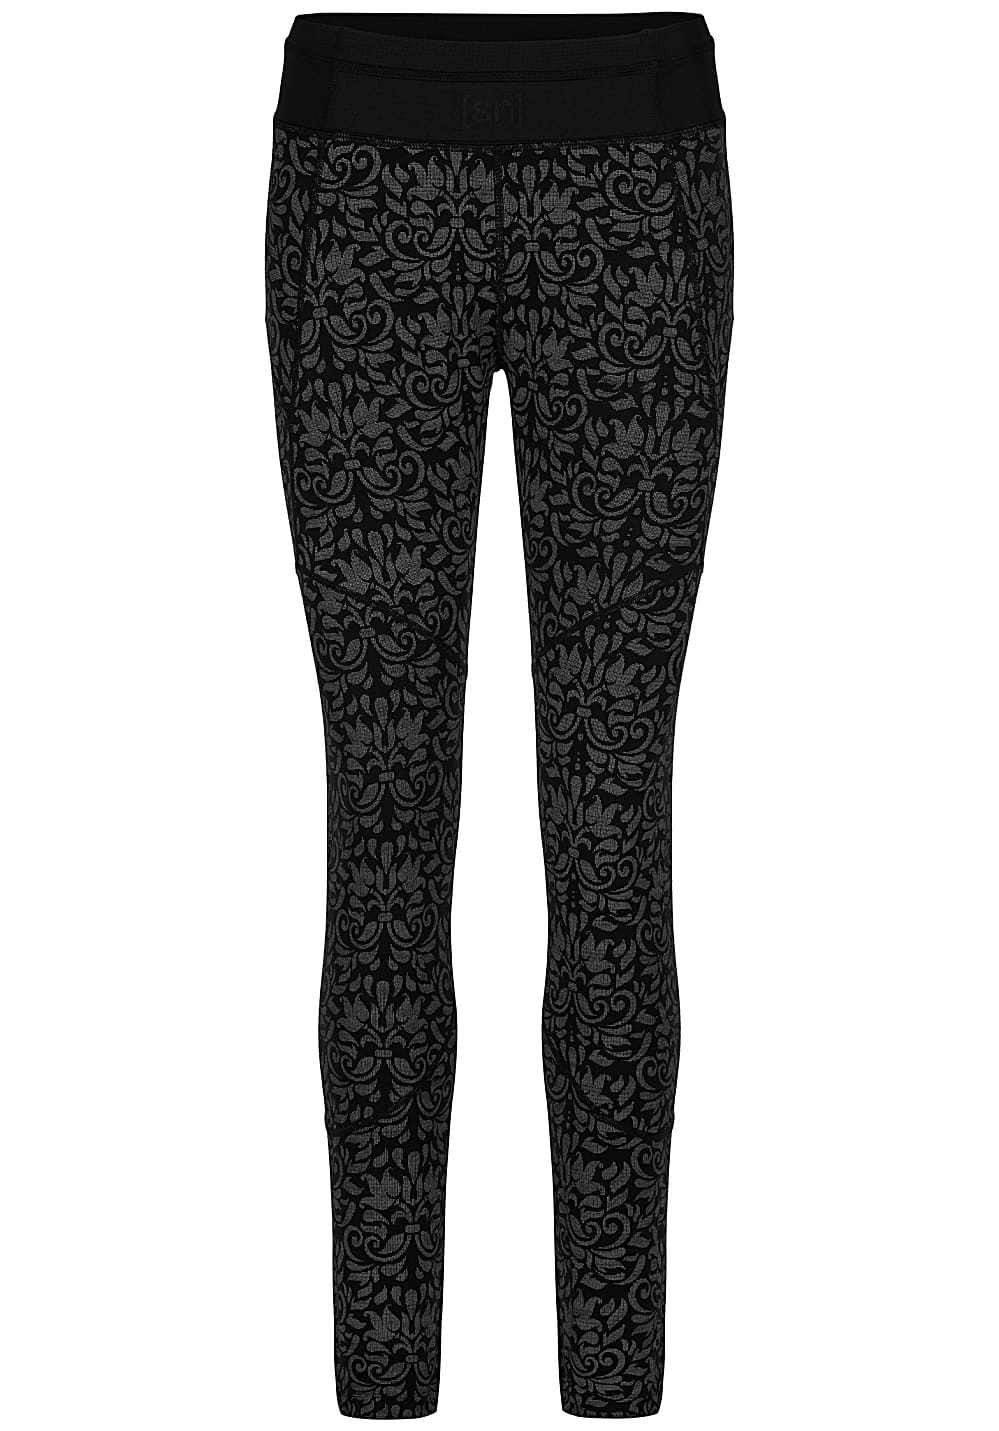 super-natural-motion-tights-printed-leggings-femmes-noirs